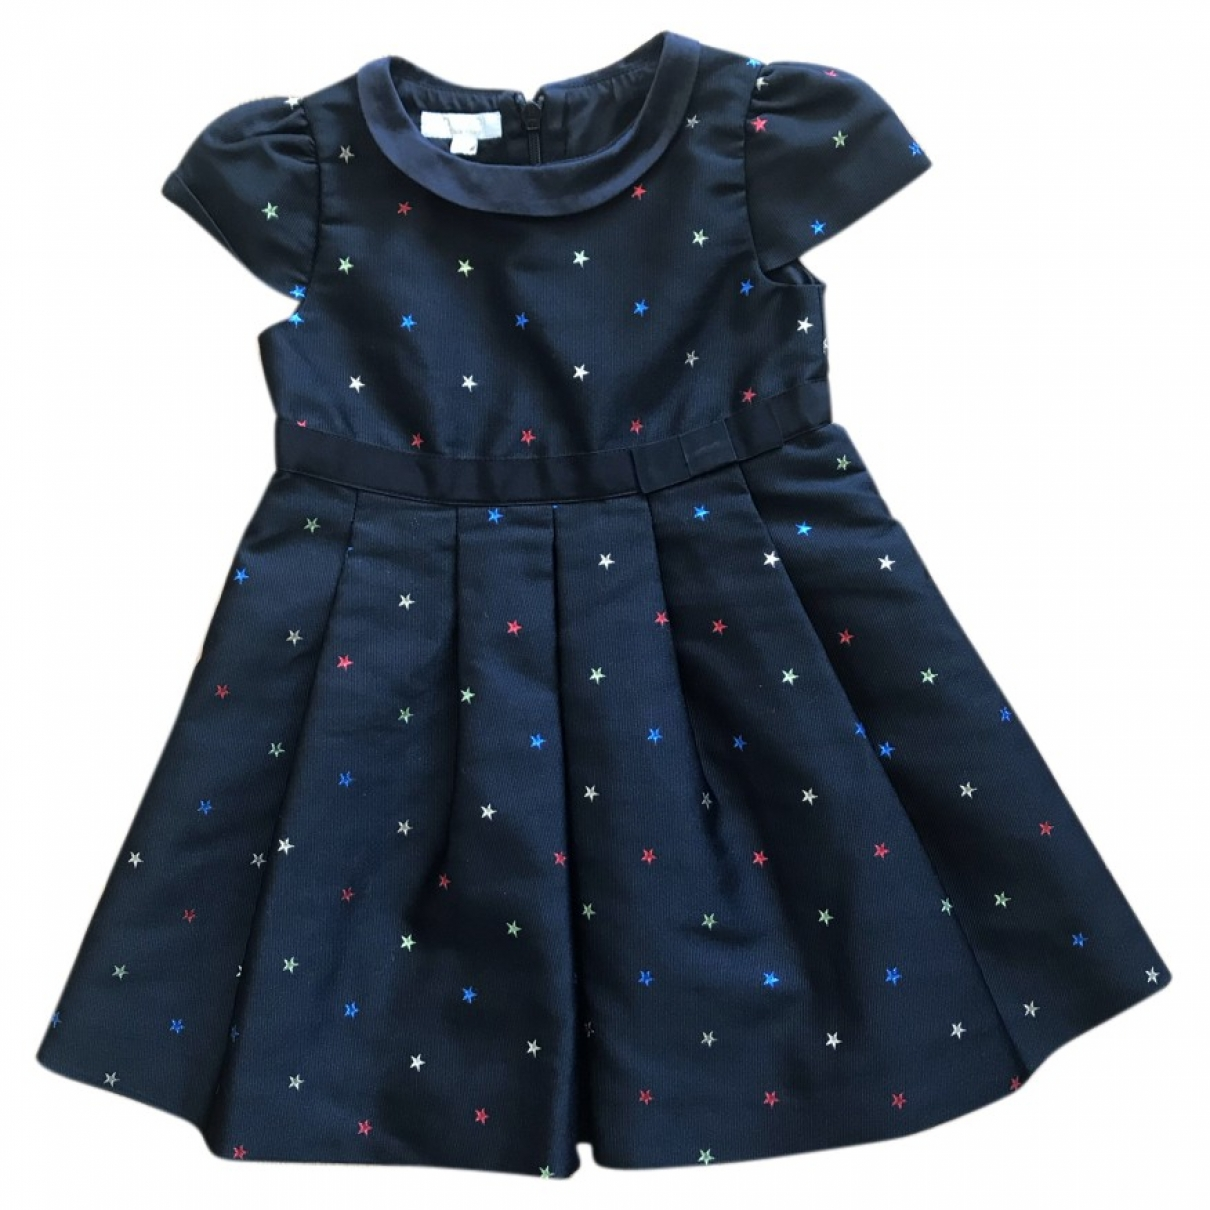 Gucci \N Black dress for Kids 12 months - up to 74cm FR